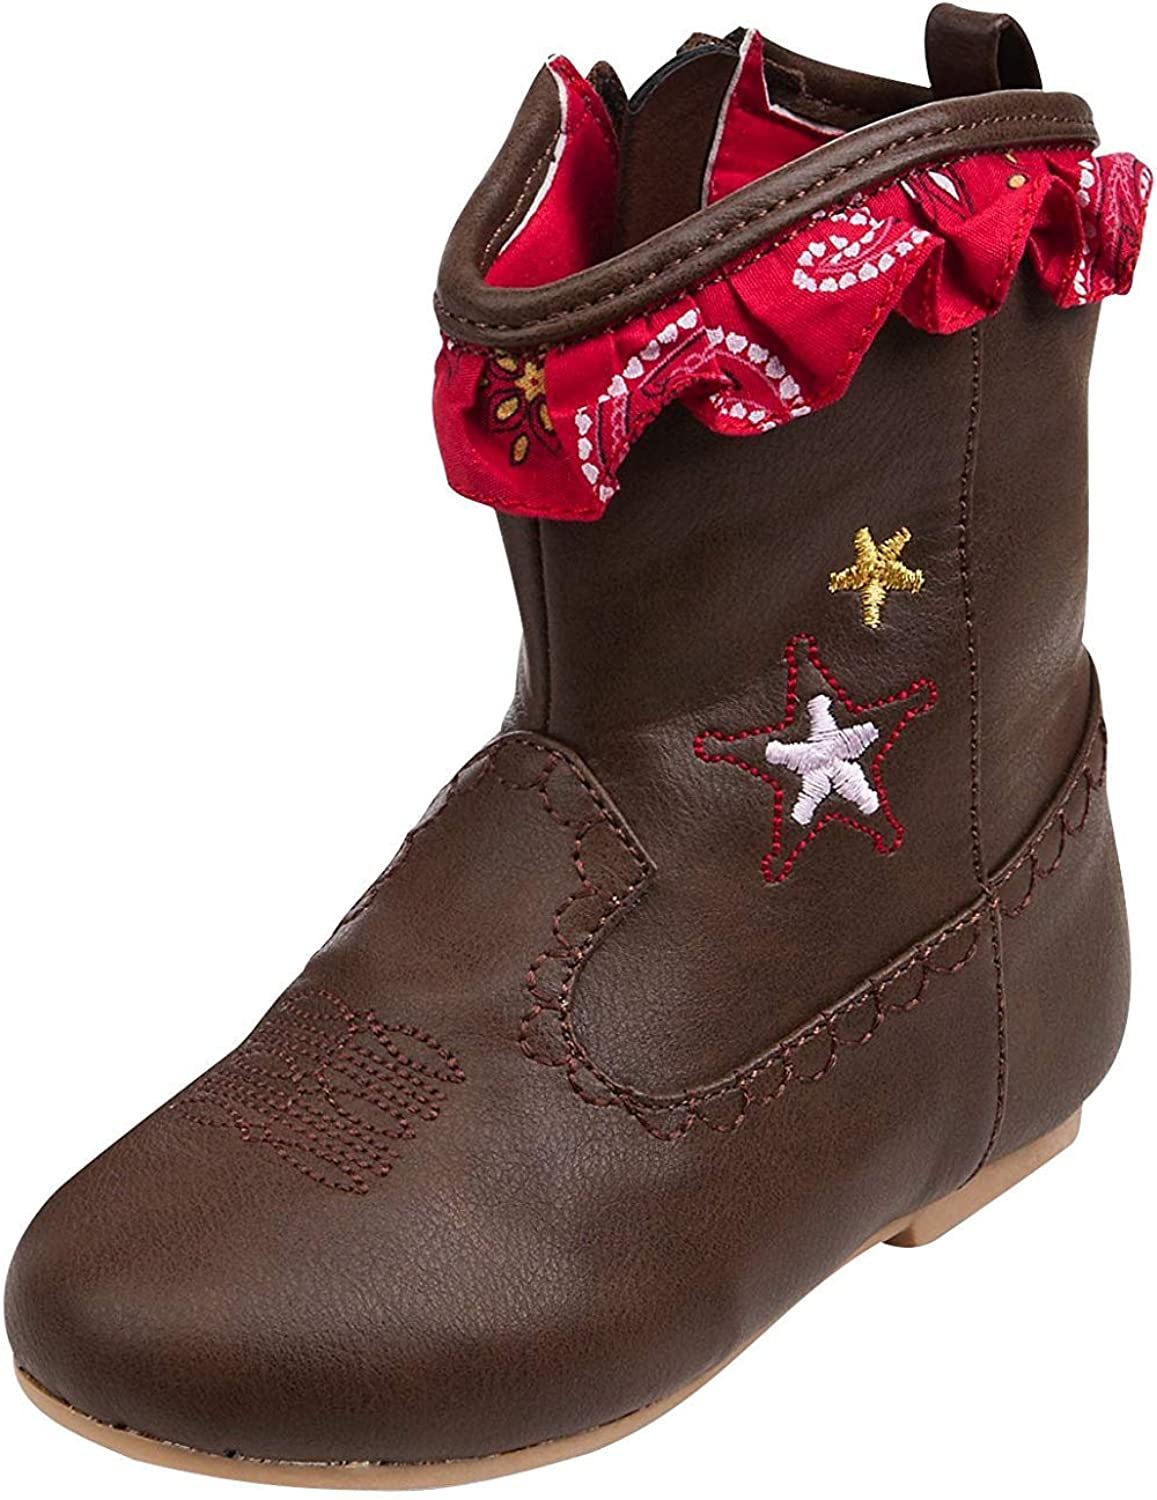 NWT Disney Store Jessie Boots Costume Shoes Cowgirl Pixar Toy Story